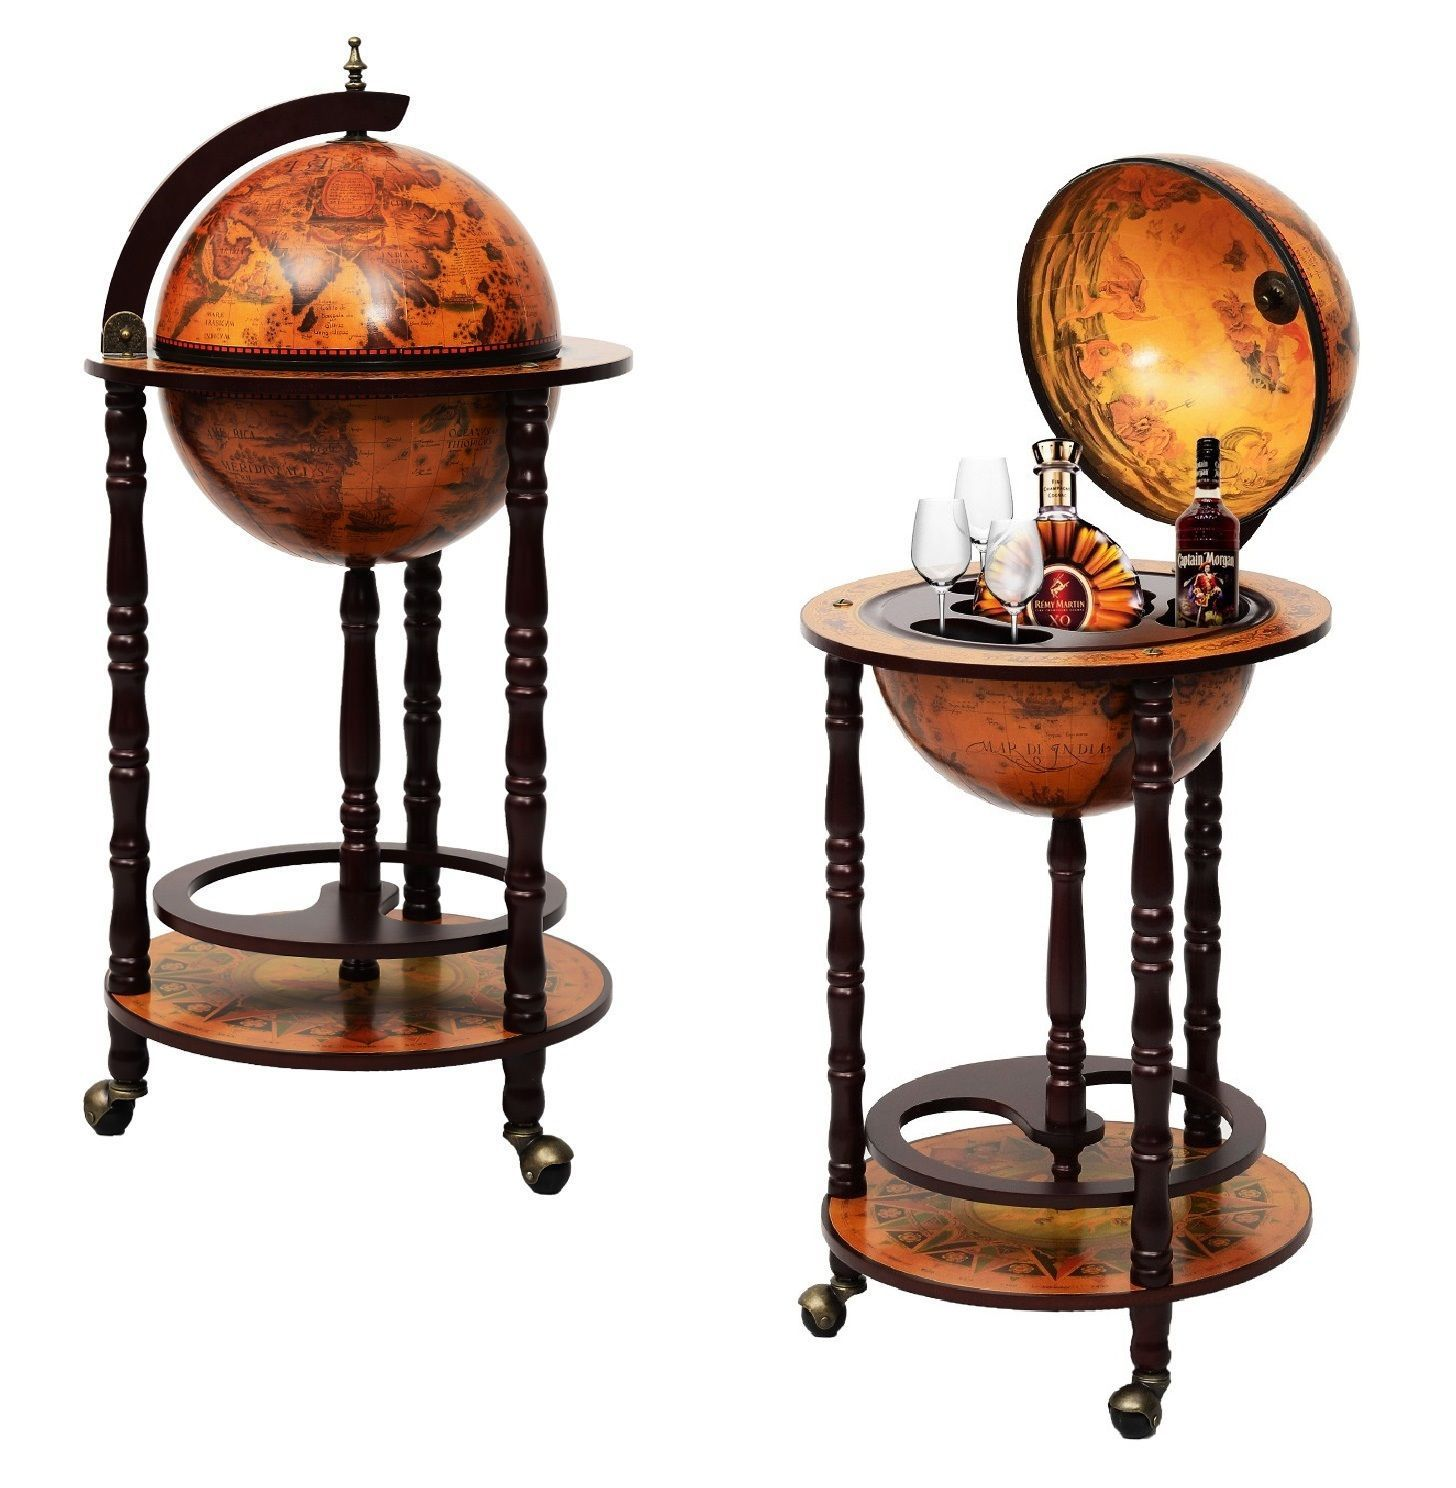 Modern Vintage Style Globe Drinks Cabinet Wine Rack Holder Cream